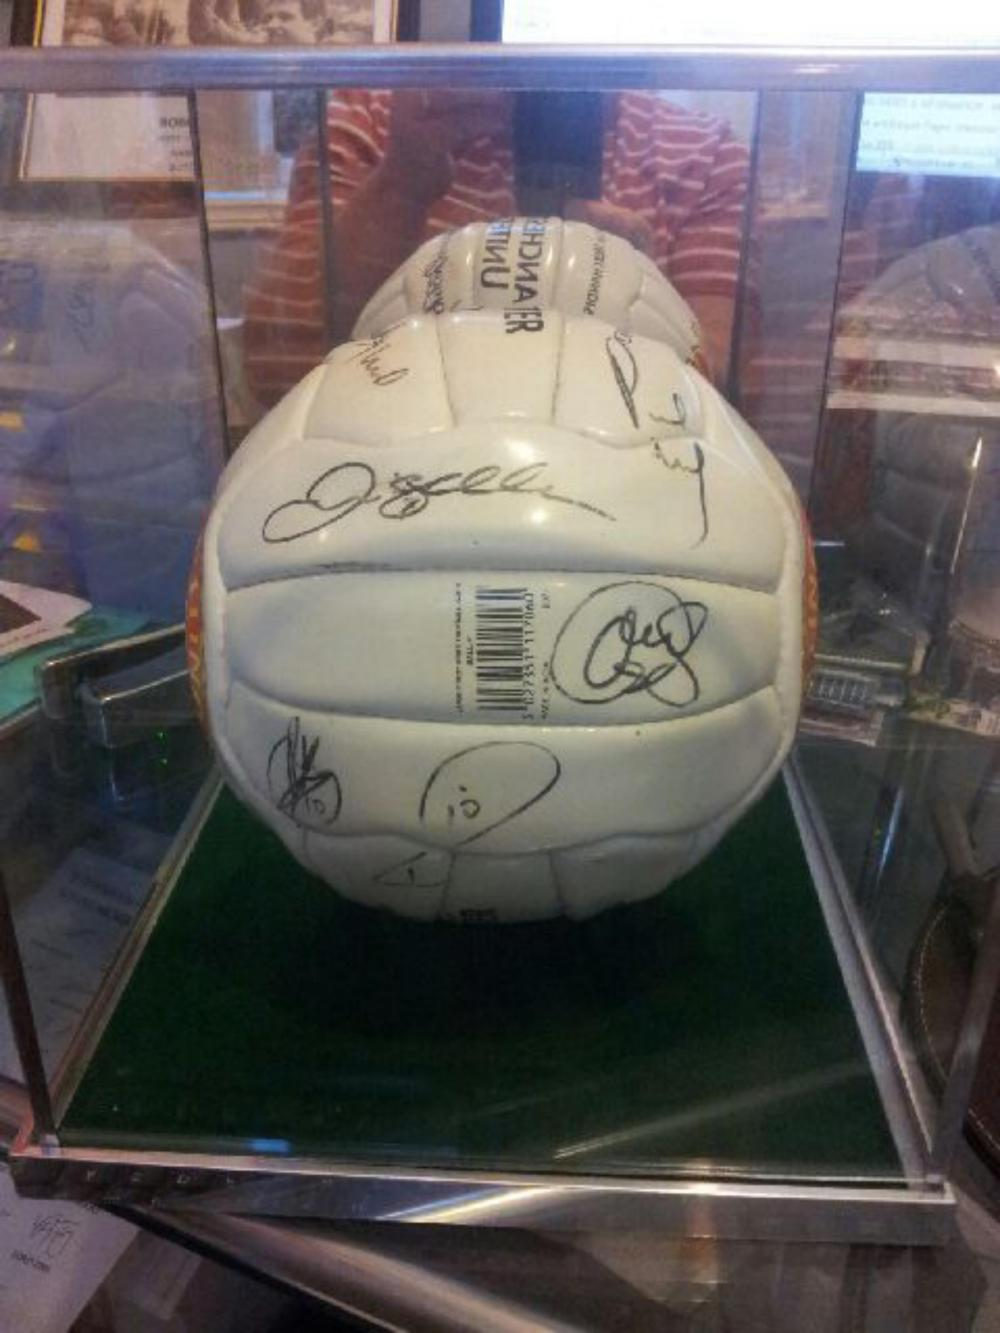 Lot 112: Signed 2002/03 Season Manchester United Football, signed by the following players 1 Roy Keane, 2 Sir Alex Ferguson 3 Michael Silvestre 4. Nicky Butt 5 Veron 6. Beckham 7. Paul Schole's 8. Fortune 9. Ruud Van Nistlerooy, 9. Brown 10. Olle